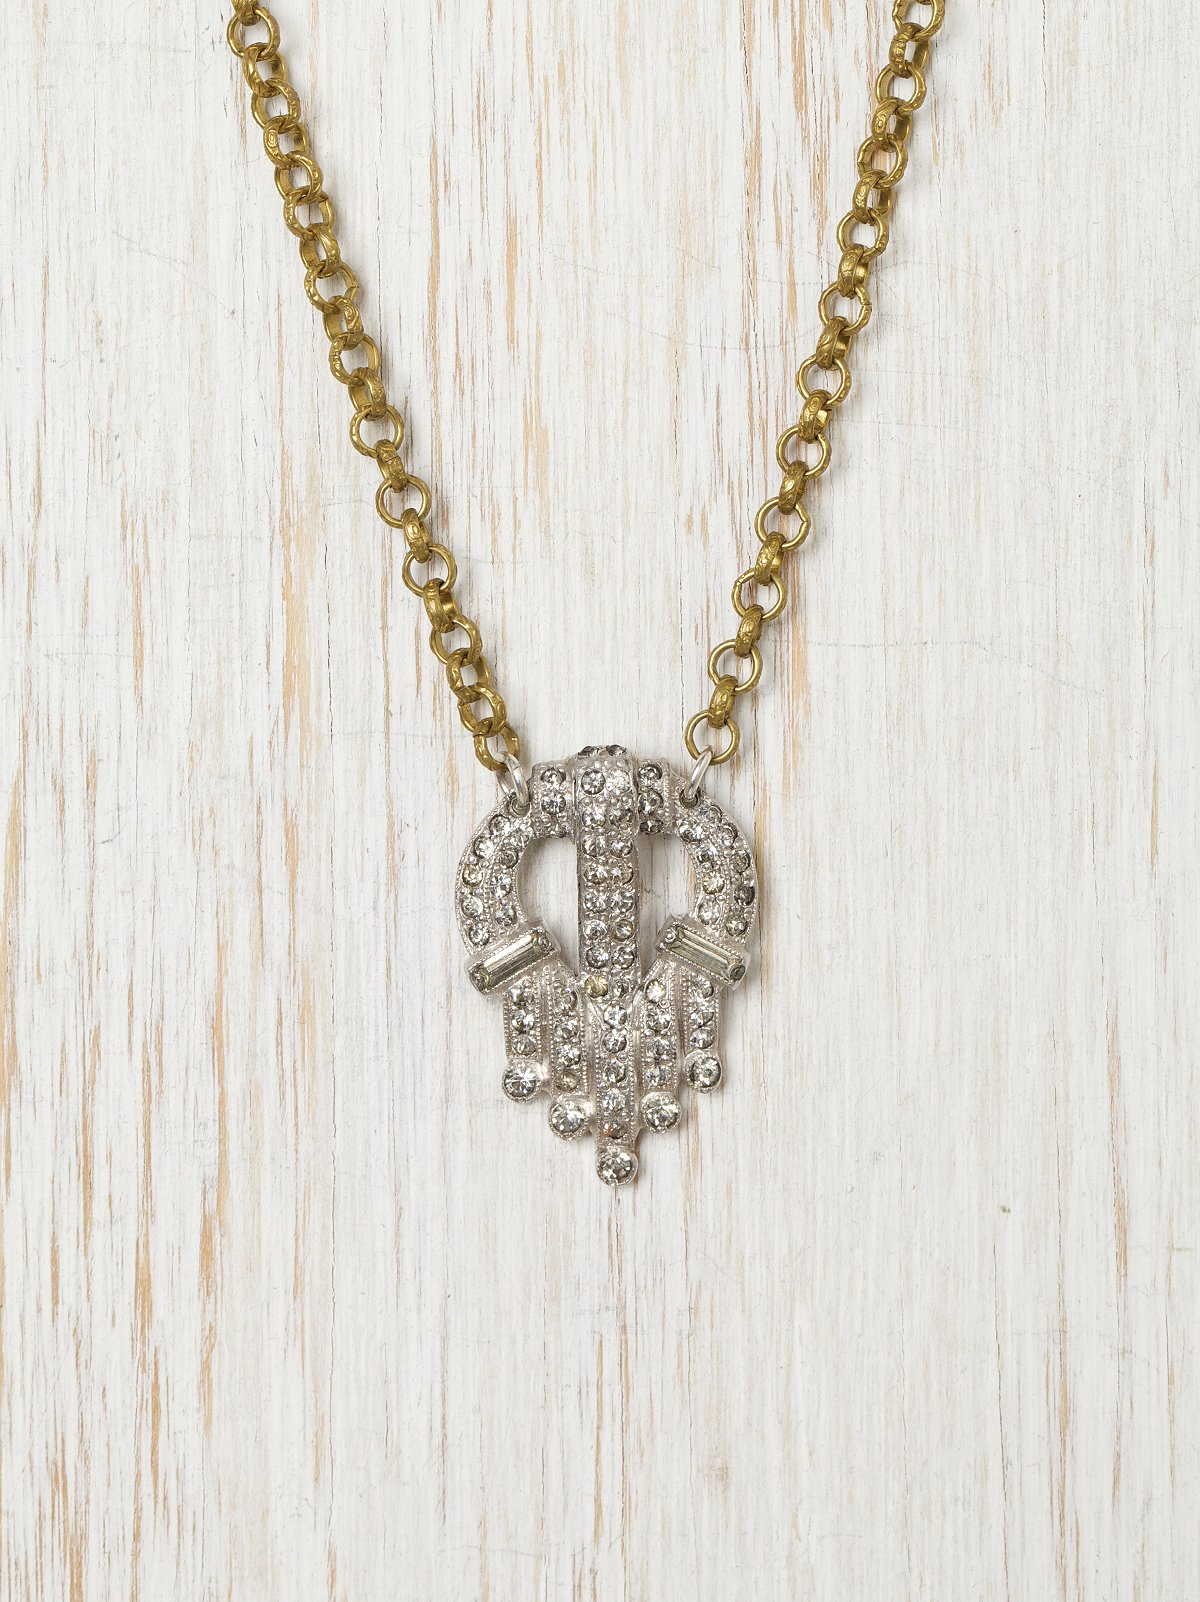 Vintage Crest Necklace